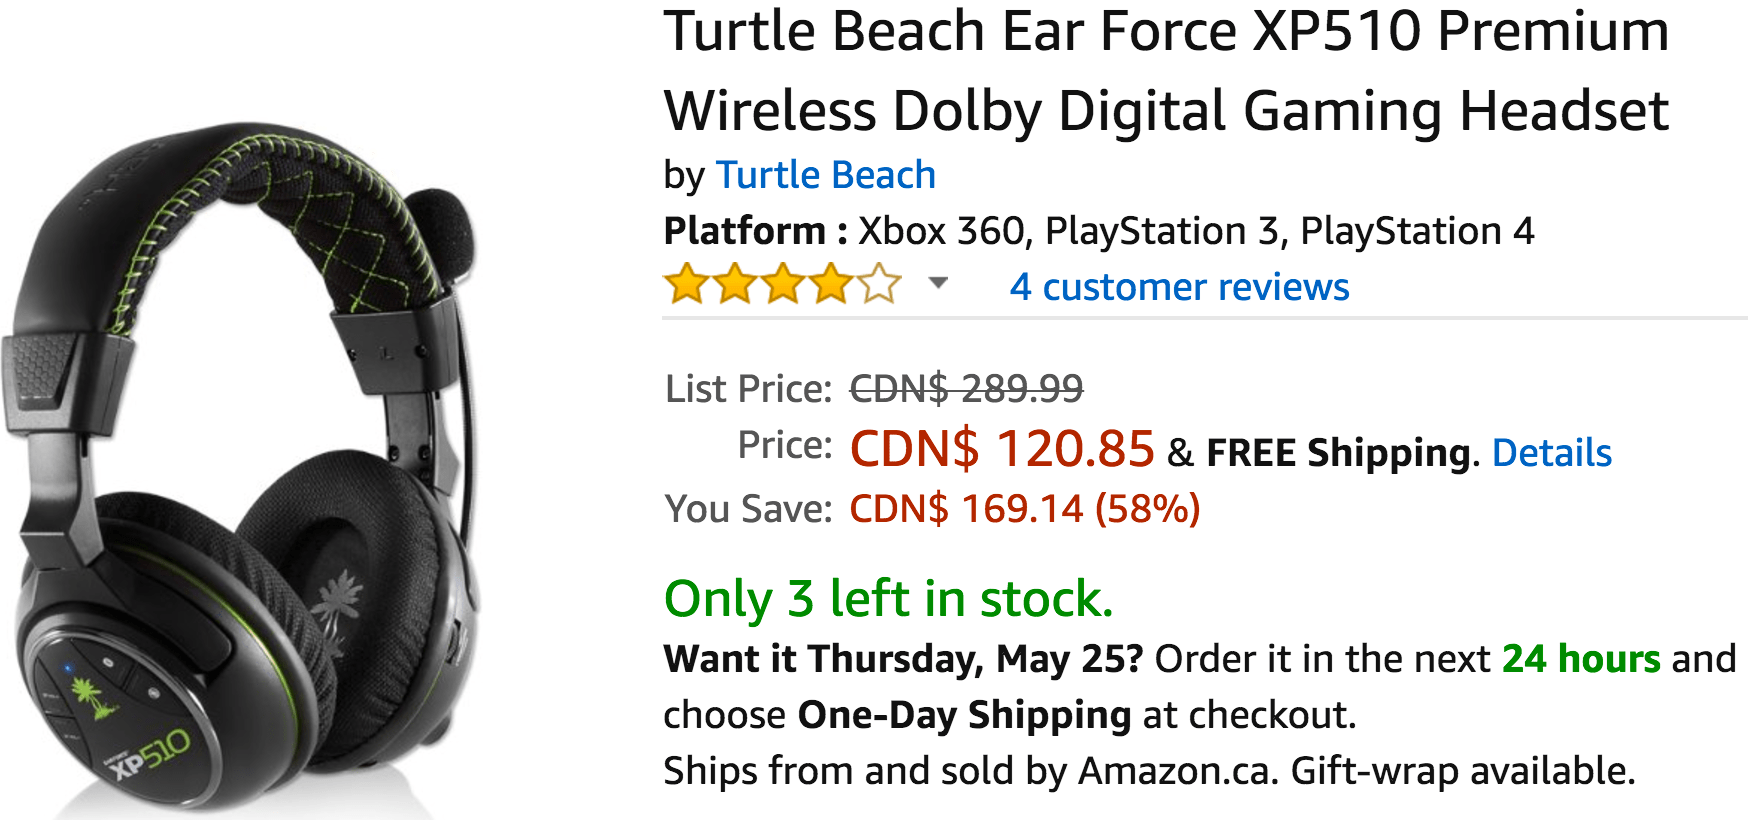 Amazon Canada Deals: Save 58% on Turtle Beach Ear Force